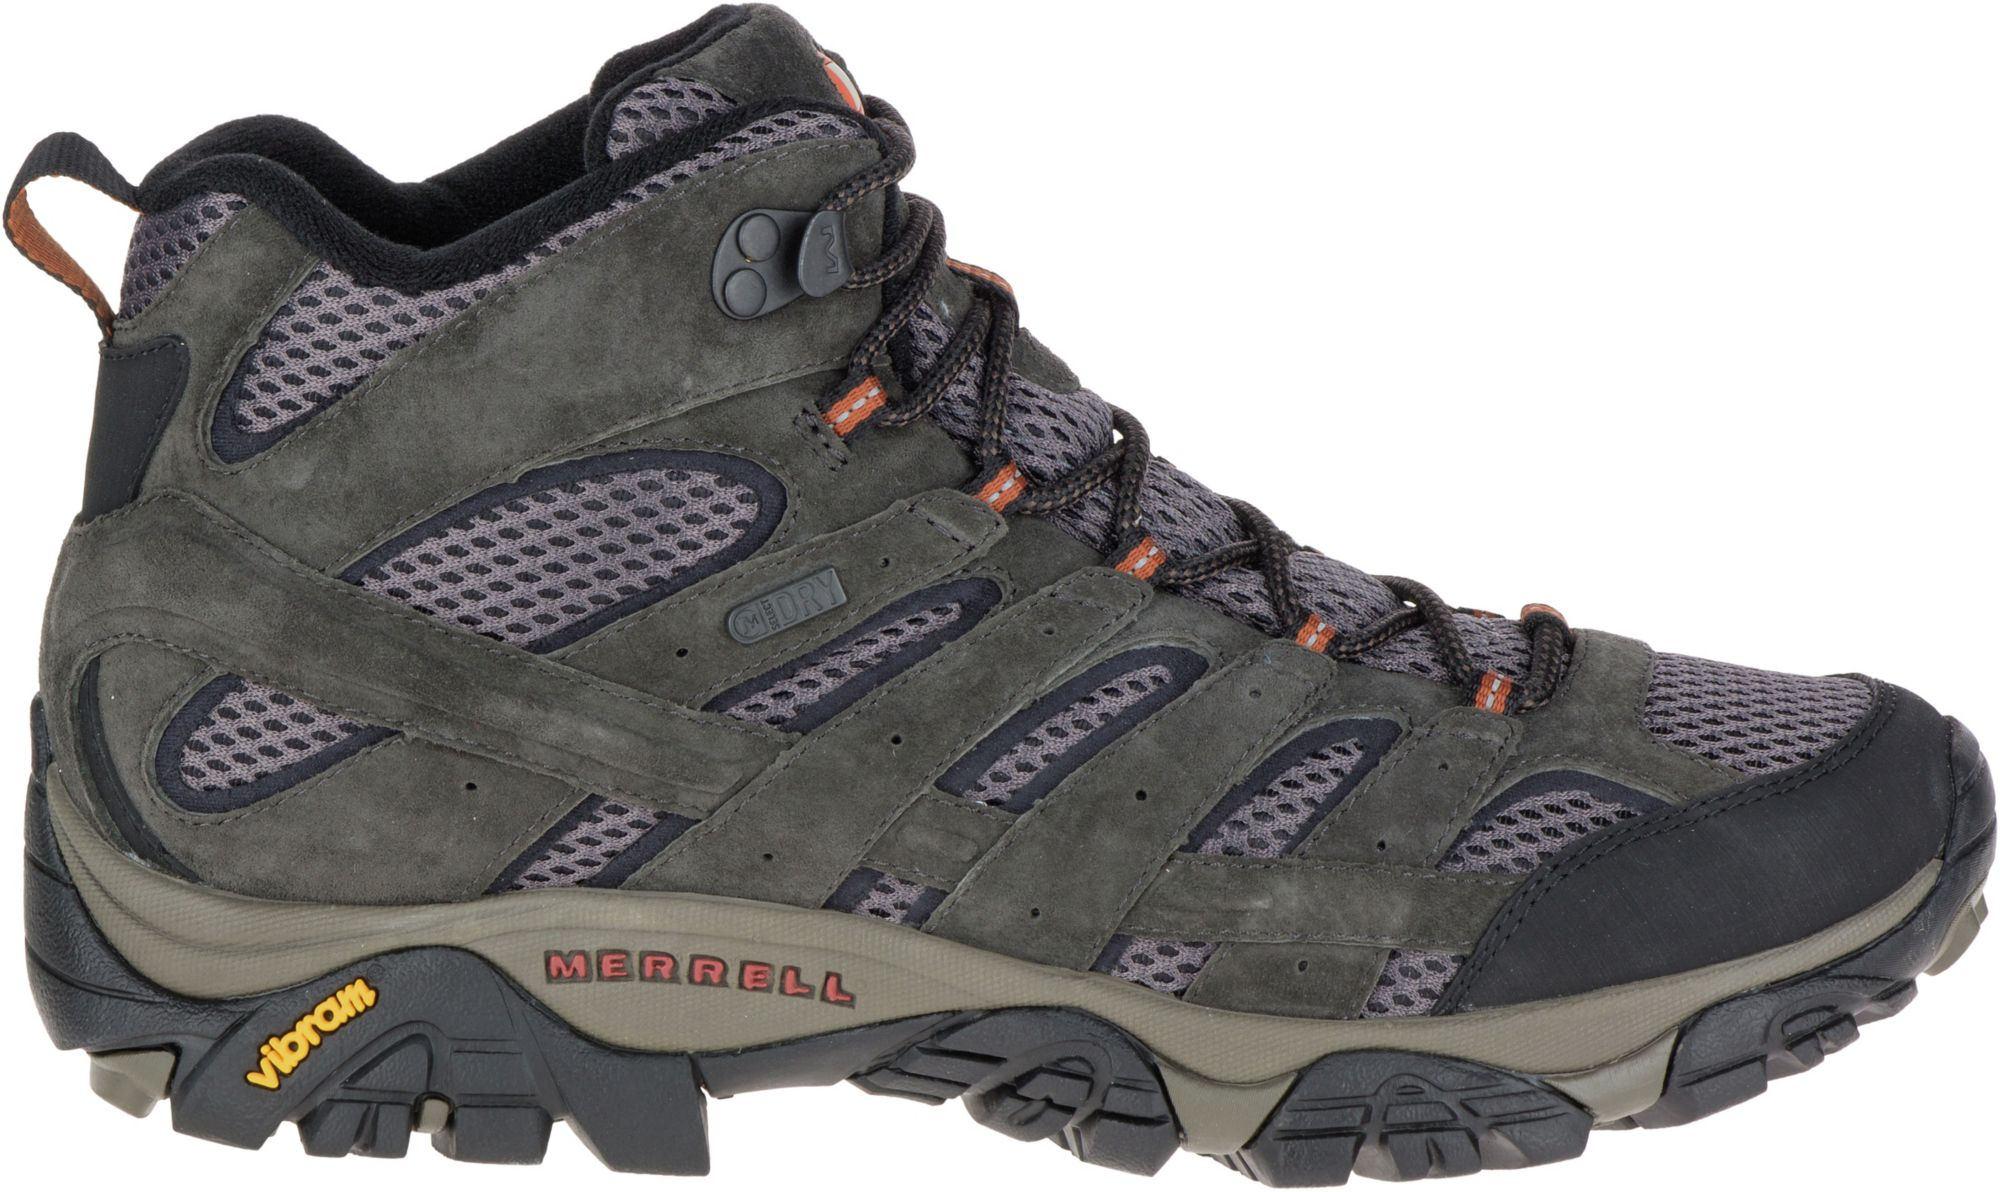 MH100 MID WTP M SHOES - ORANGE | Decathlon